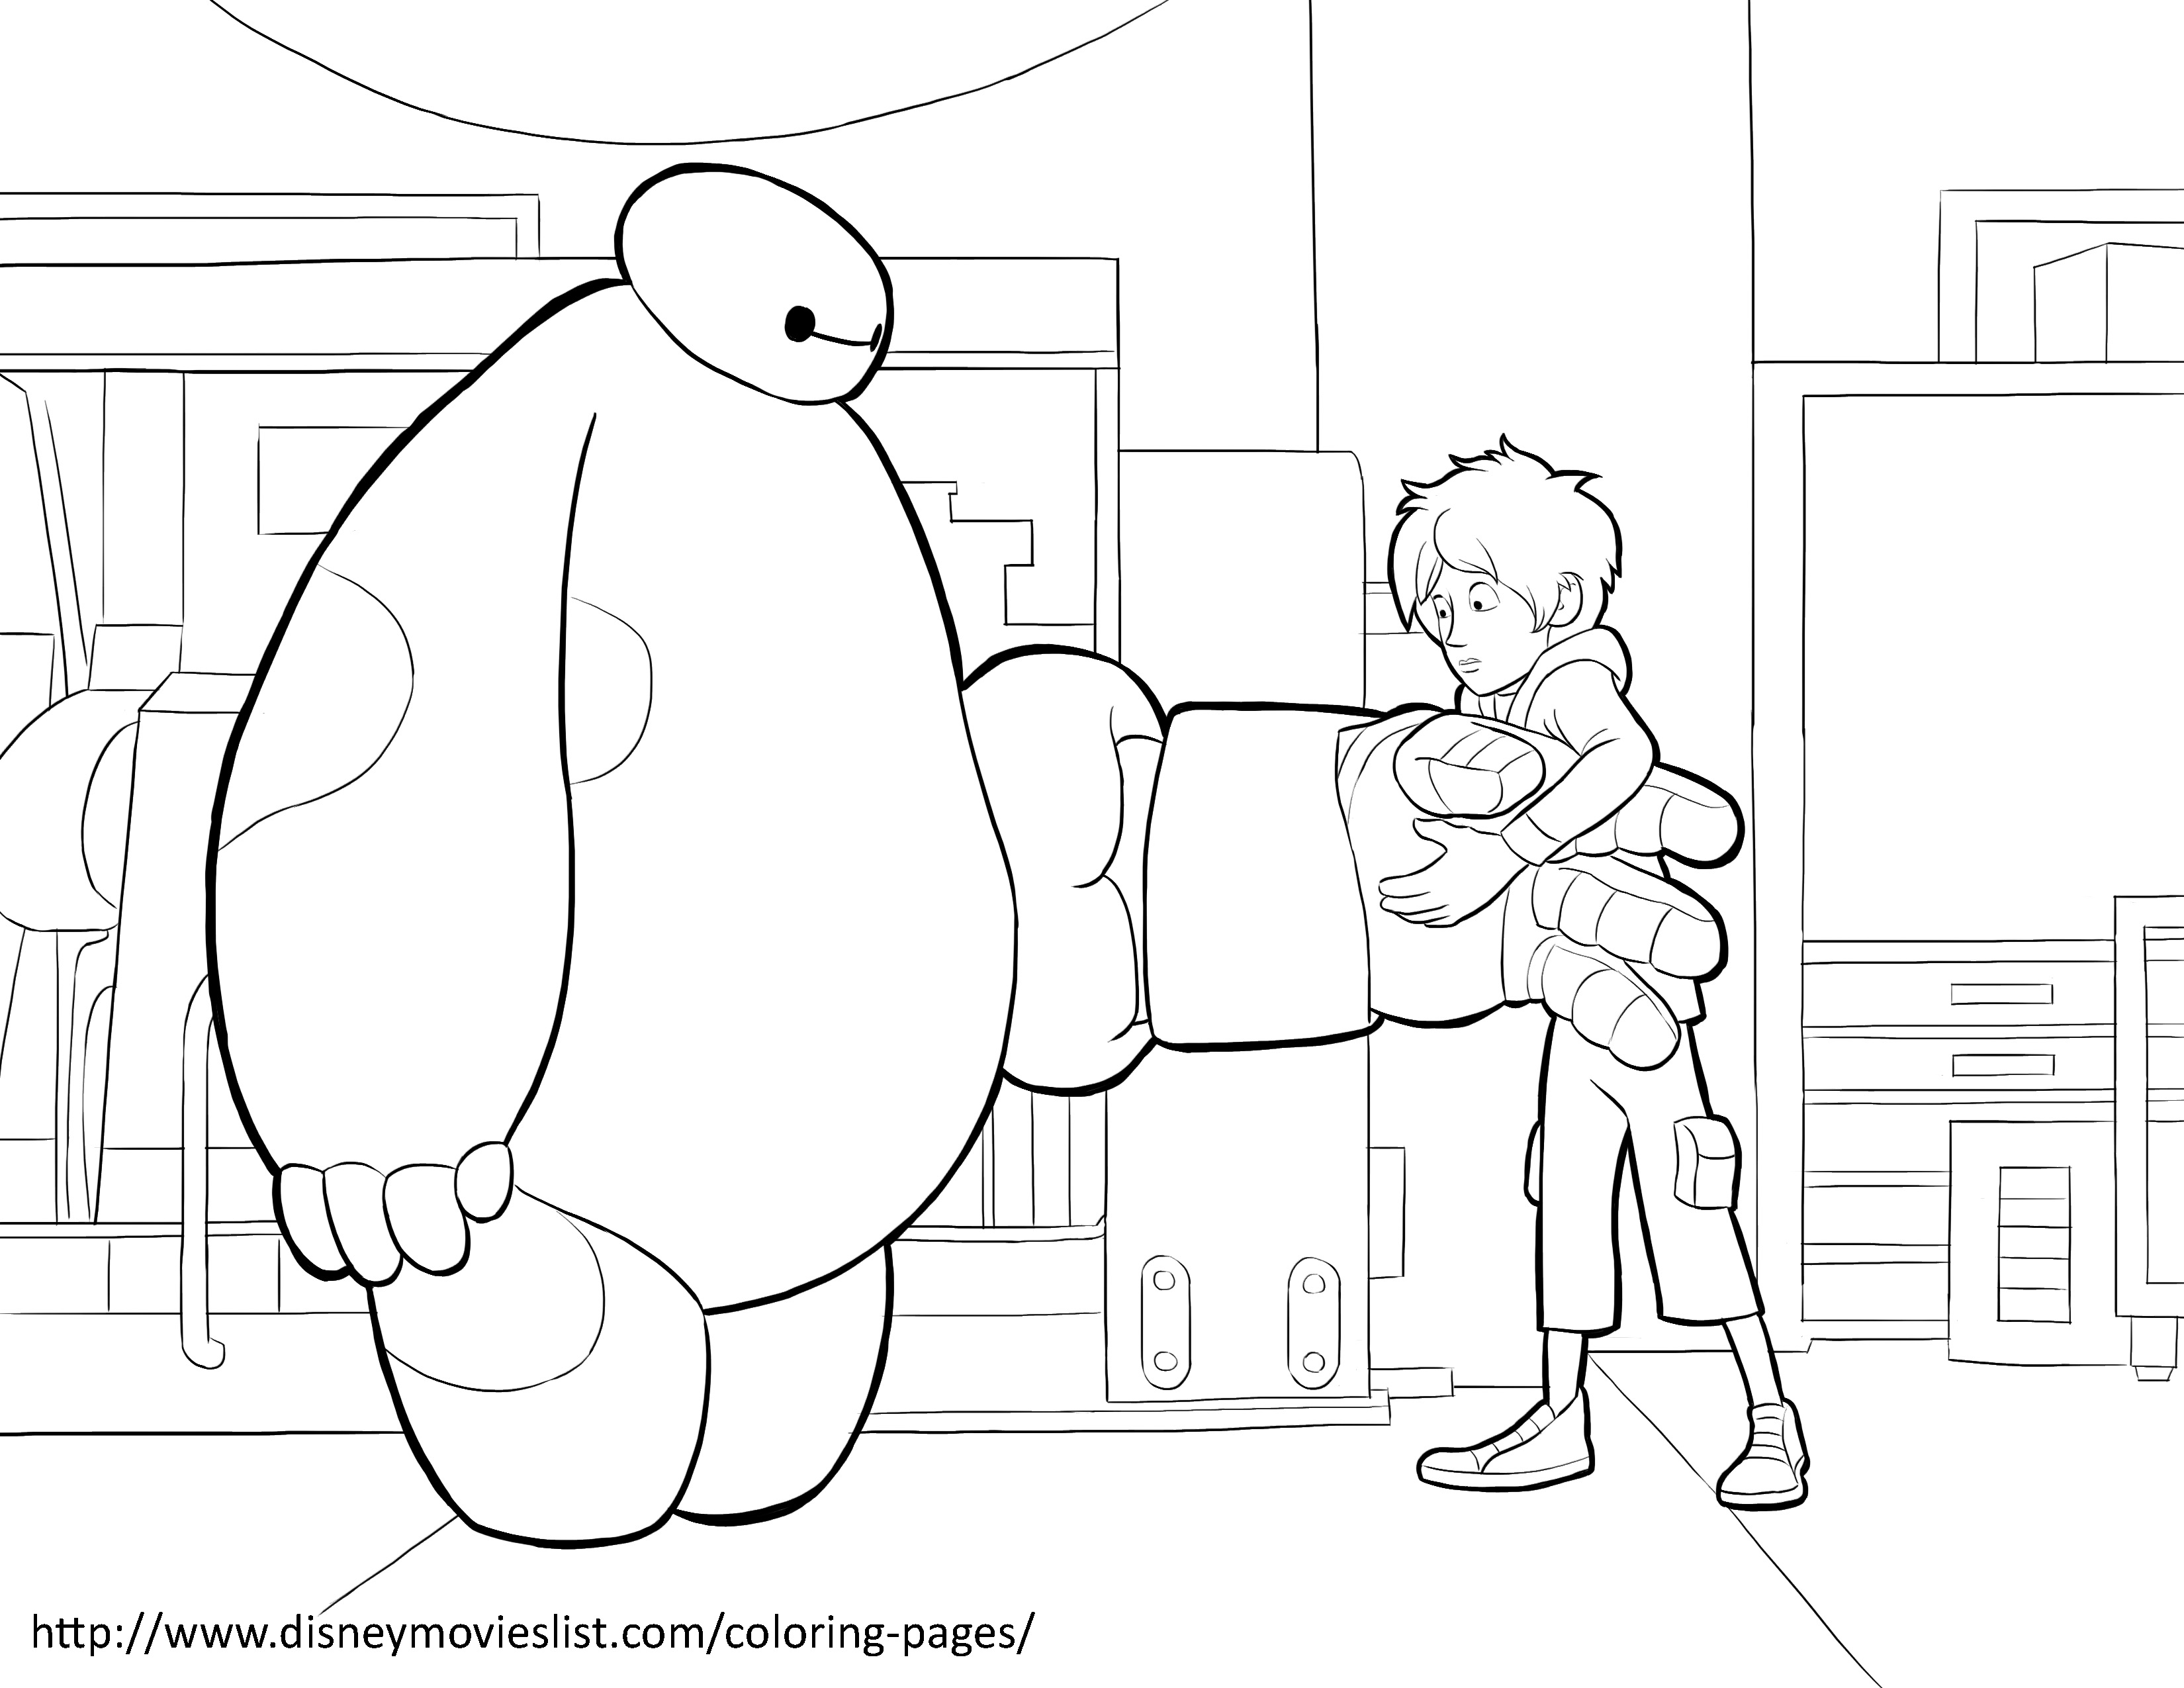 3300x2550 Baymax Is Trying To Fit Baymax With New Armor! Free Coloring Sheet